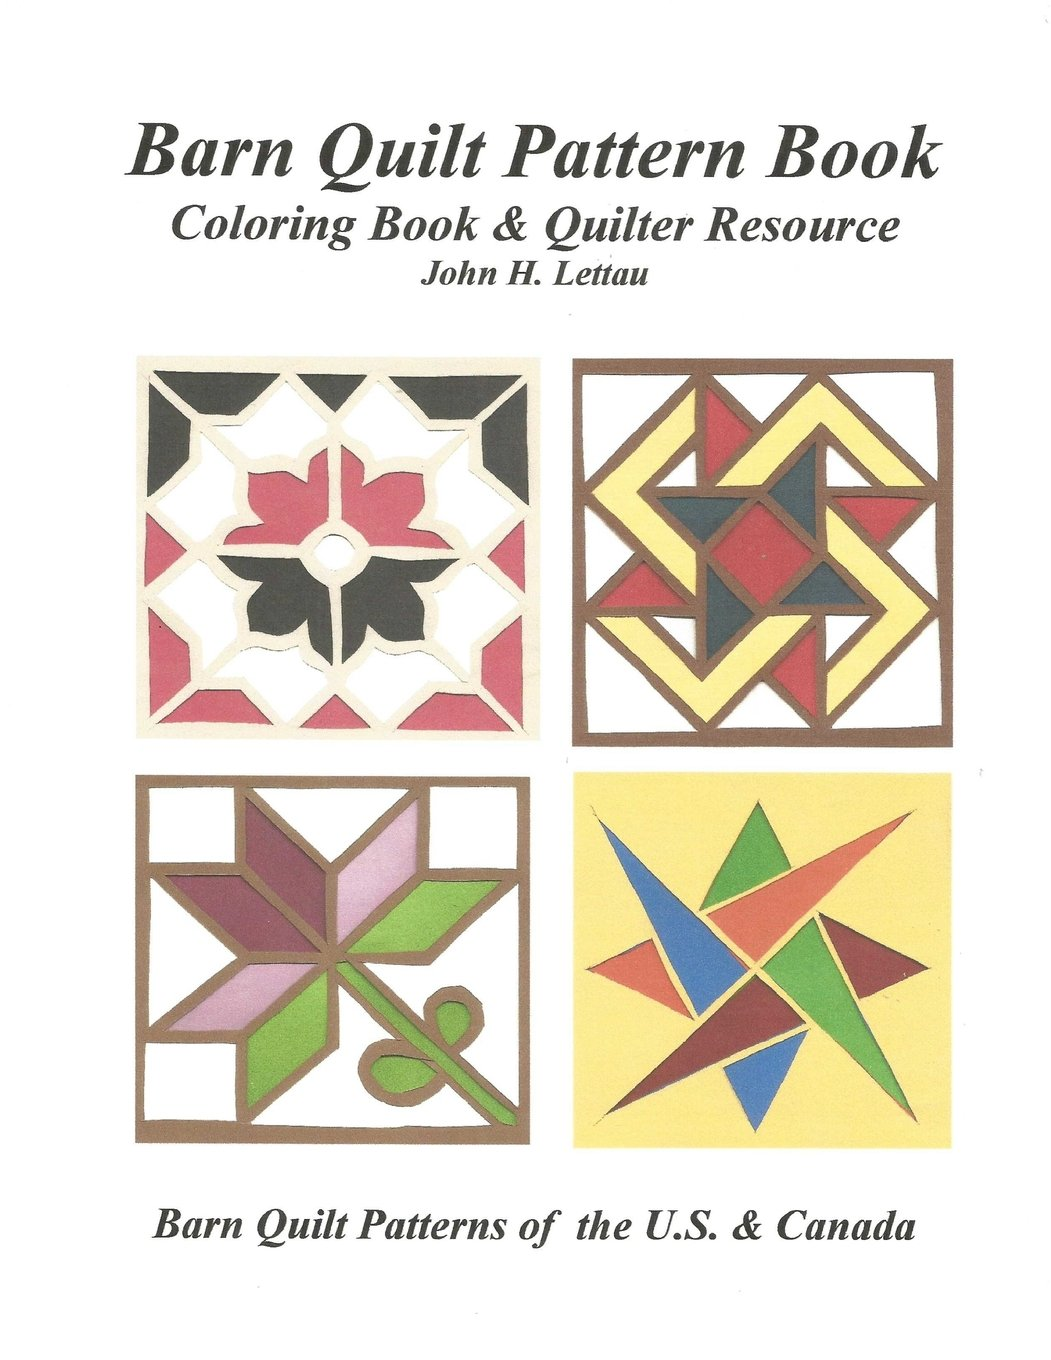 Barn Quilt Pattern Book Lettau John H 9781718685222 Books Amazon Ca